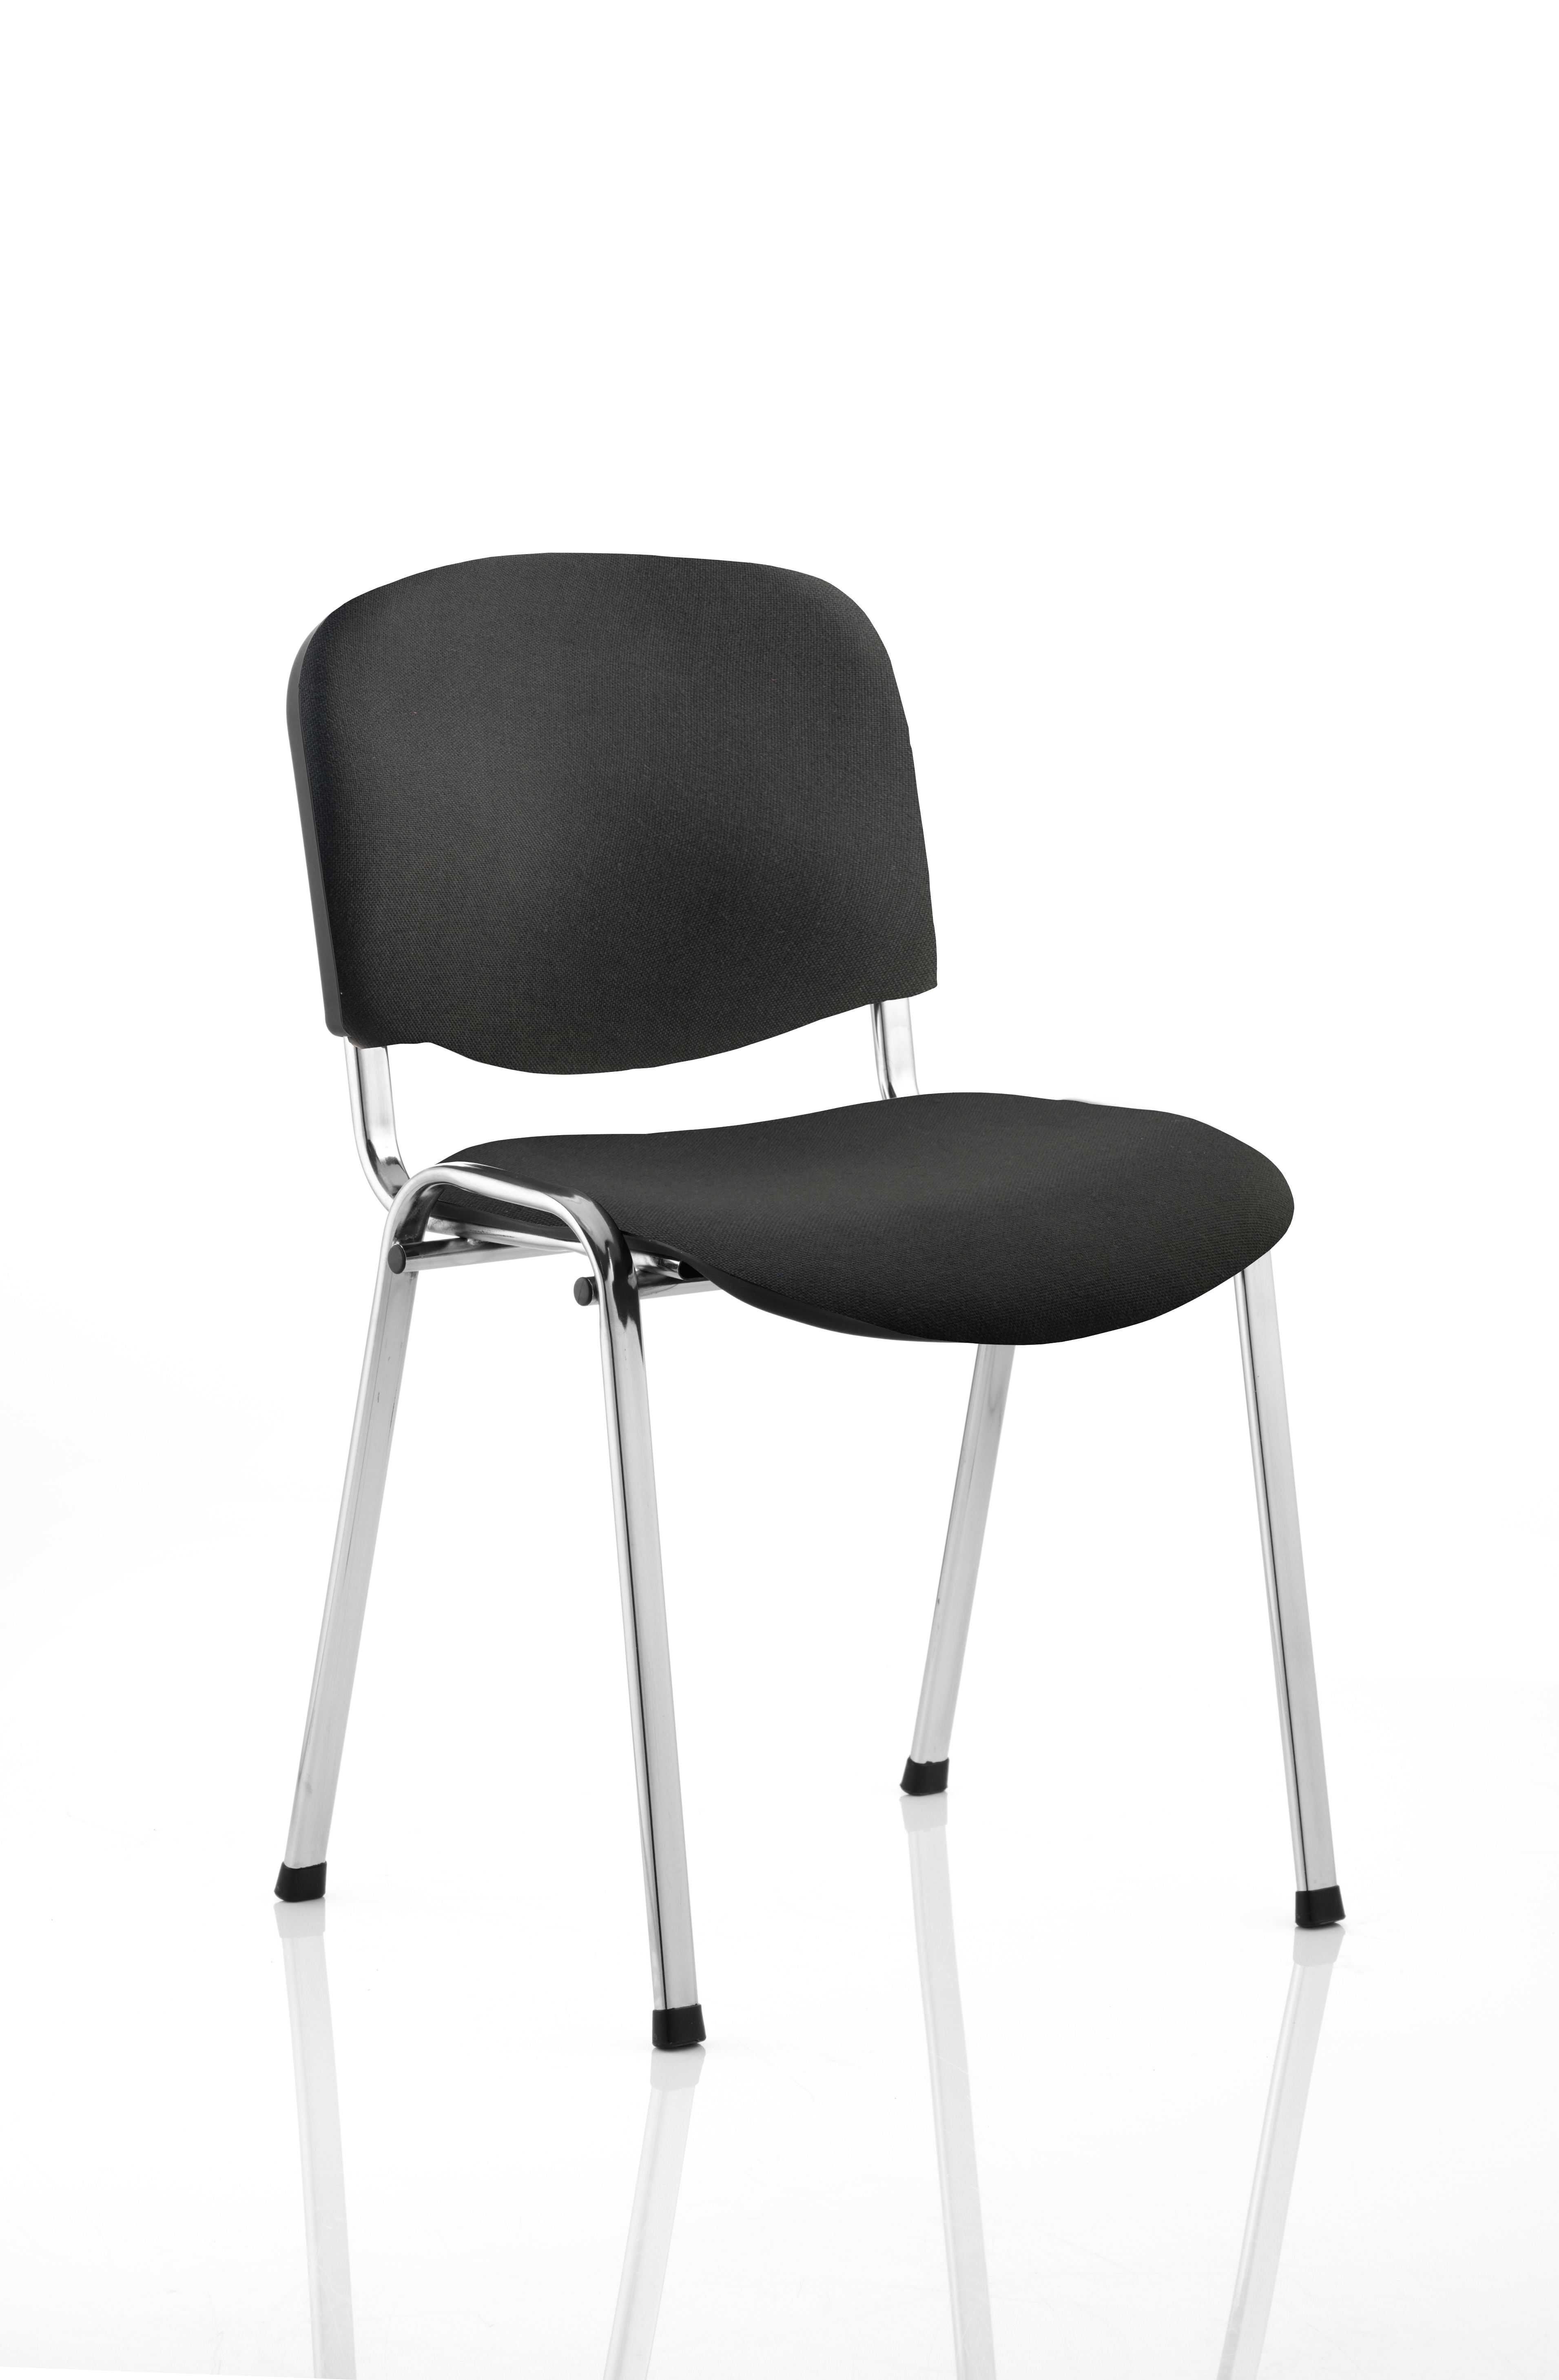 Stacking Chairs ISO Stacking Chair Black Fabric Chrome Frame BR000067